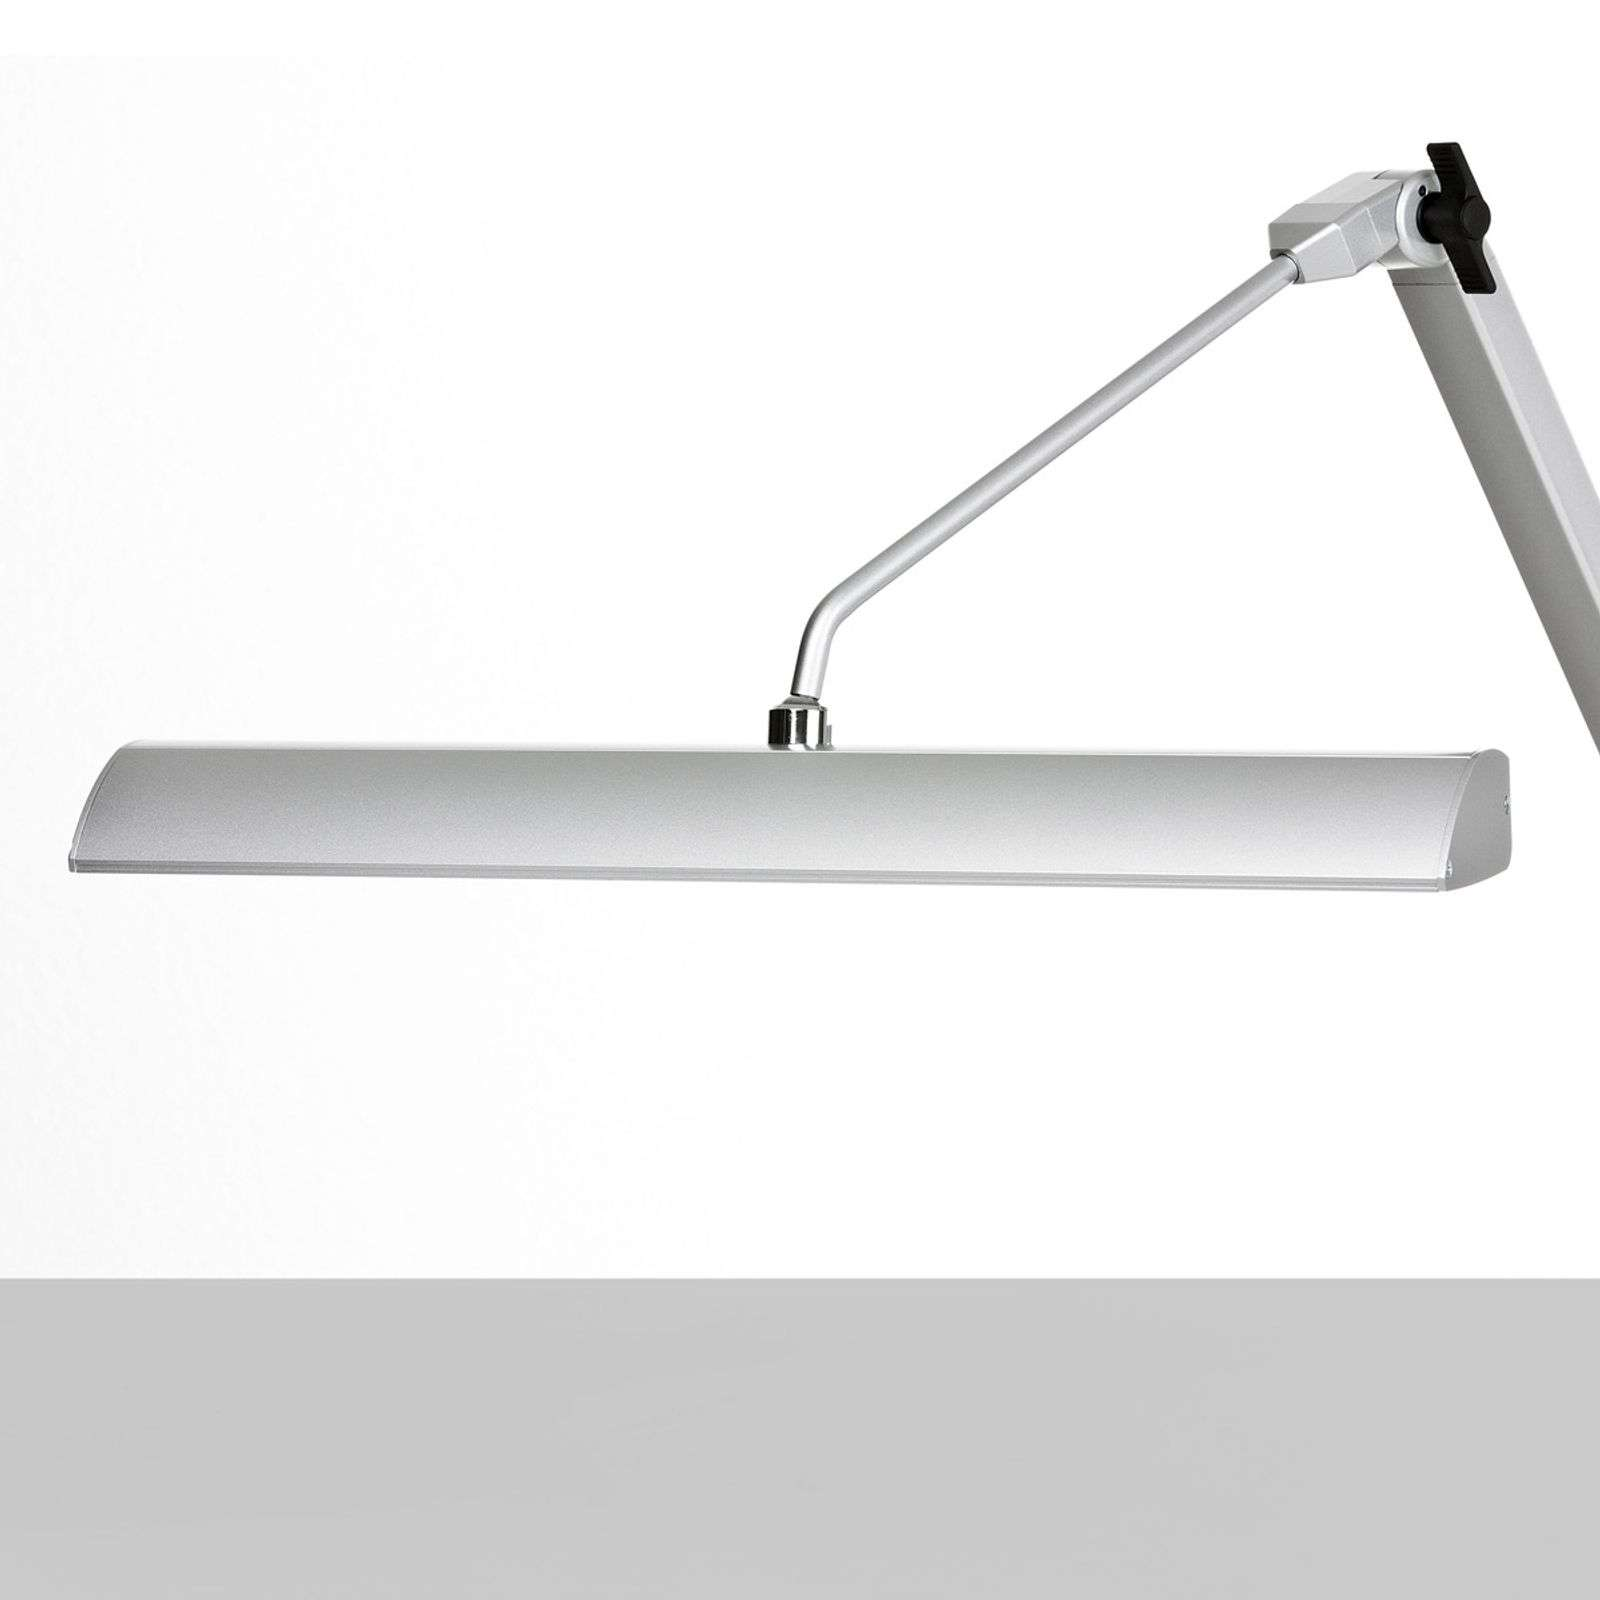 Lámpara de mesa profes. - Sistronic Allround LED